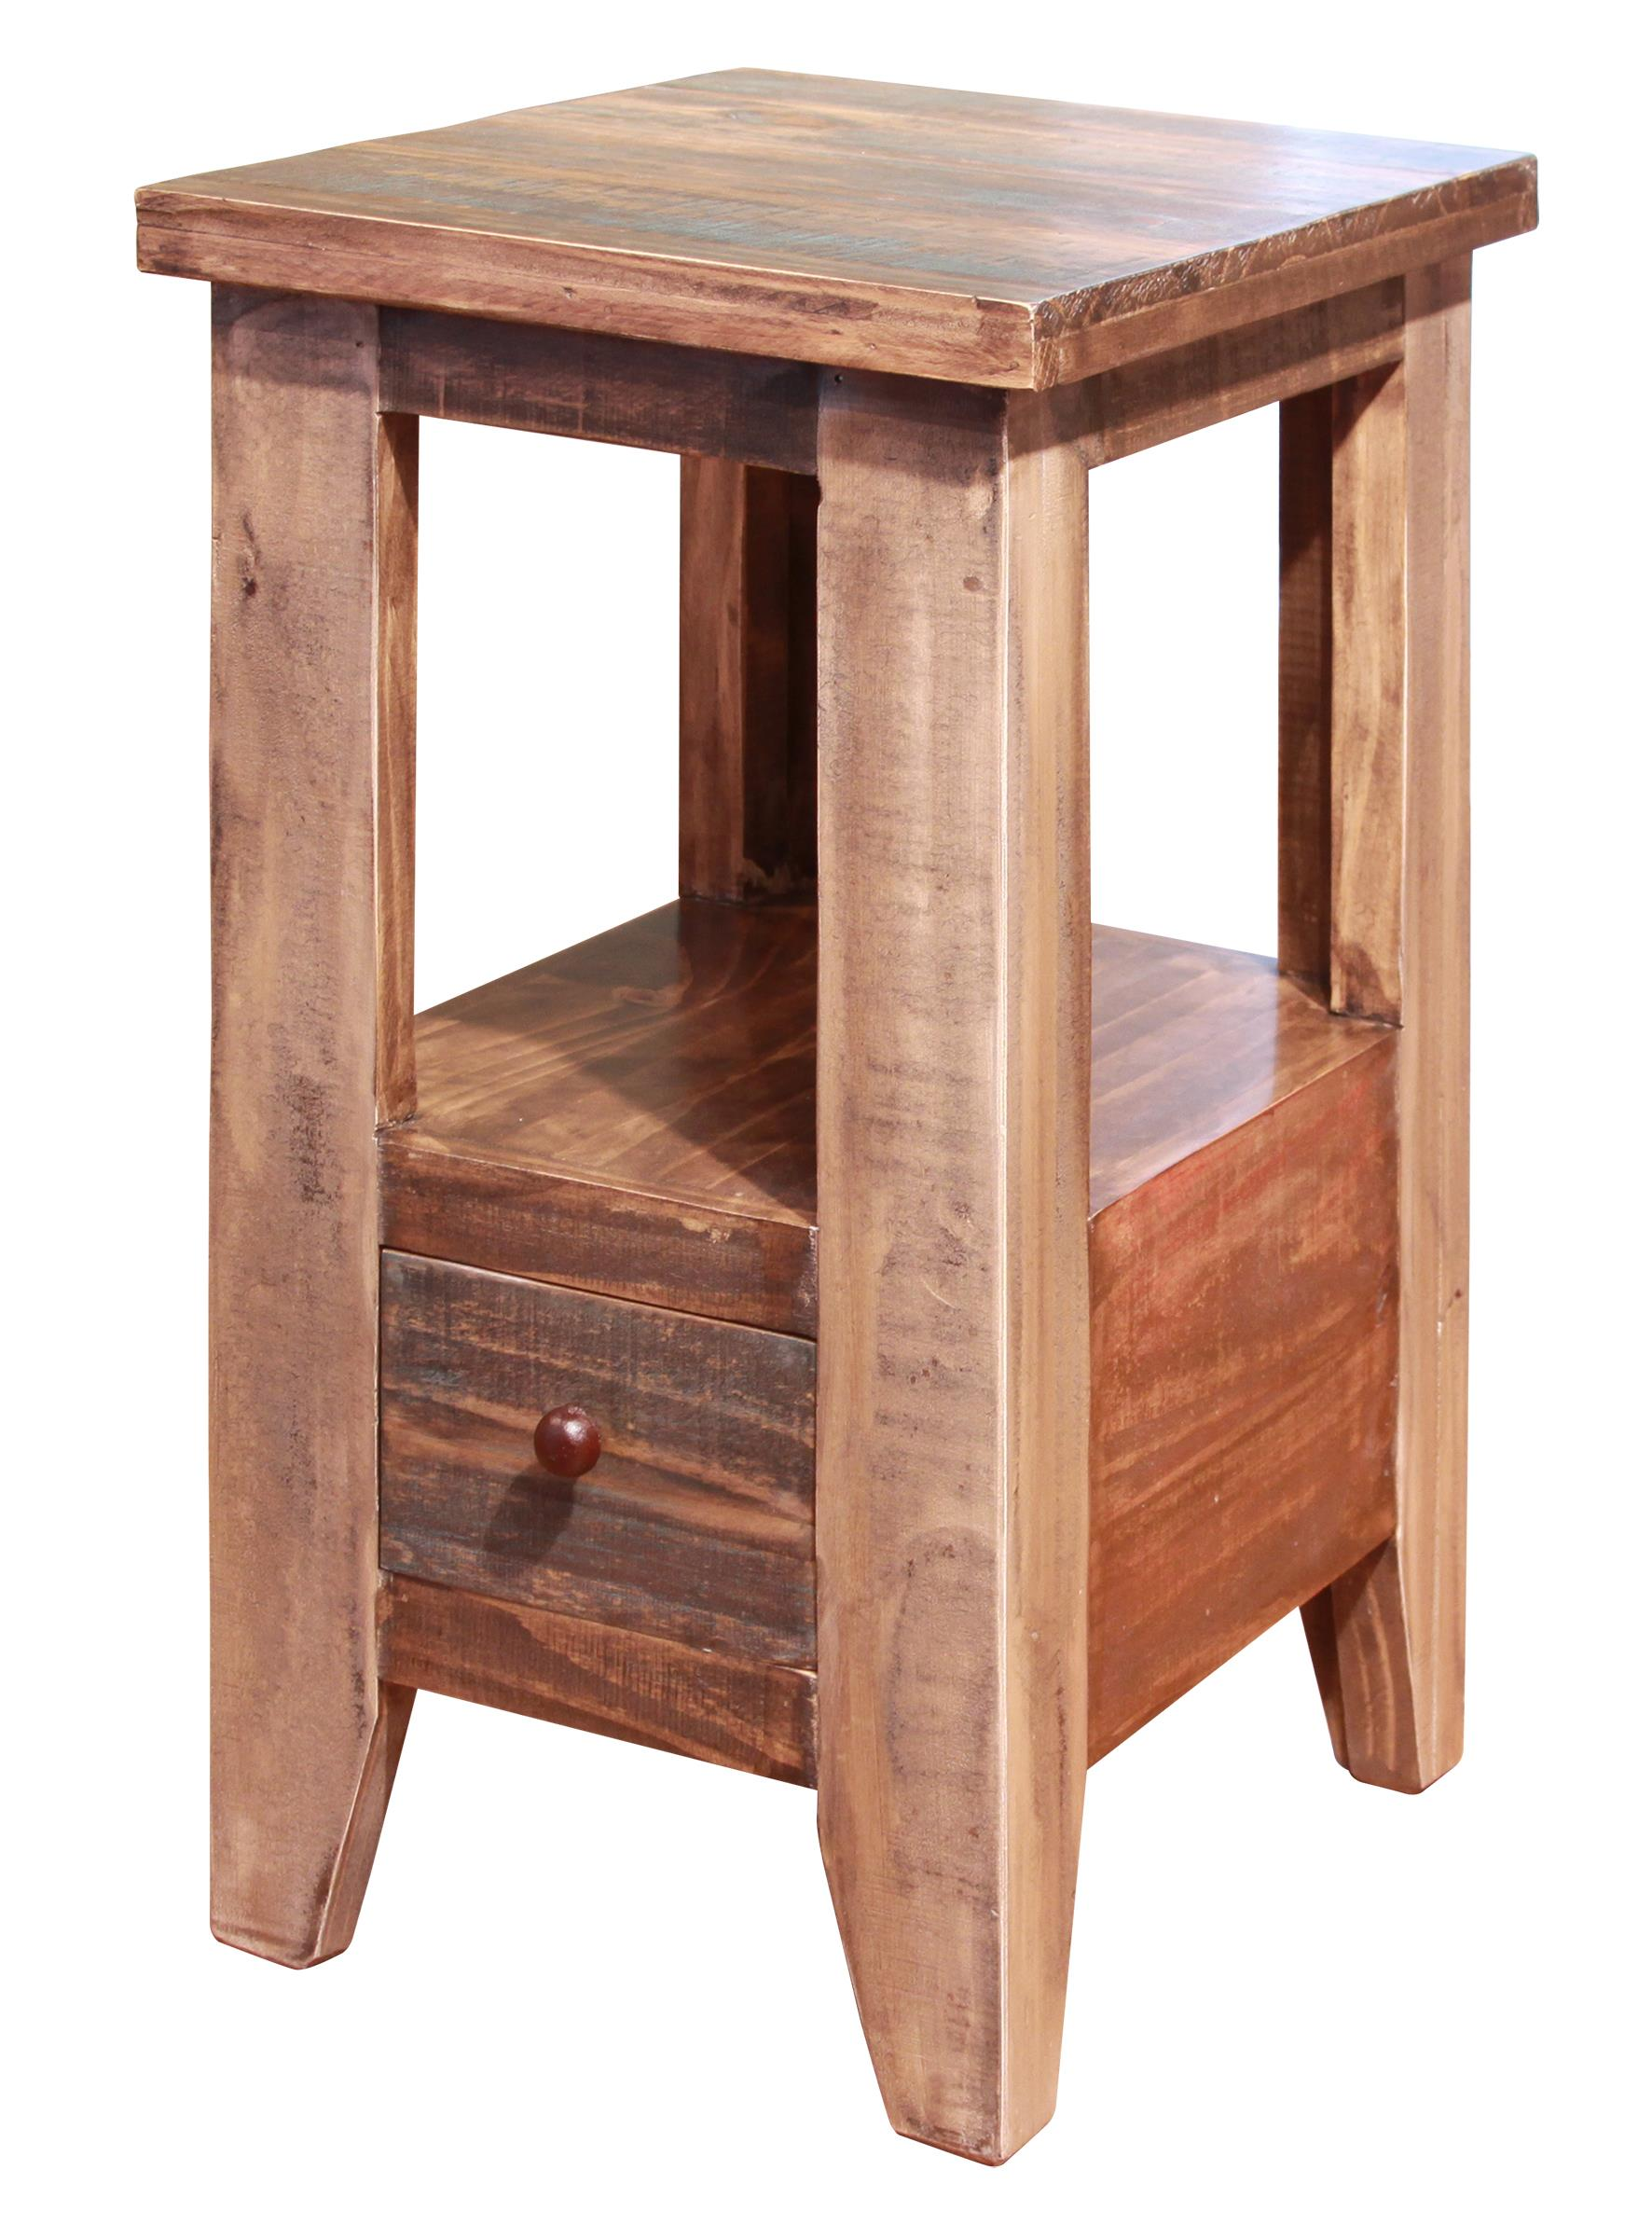 International furniture direct antique chair side table for Direct furniture